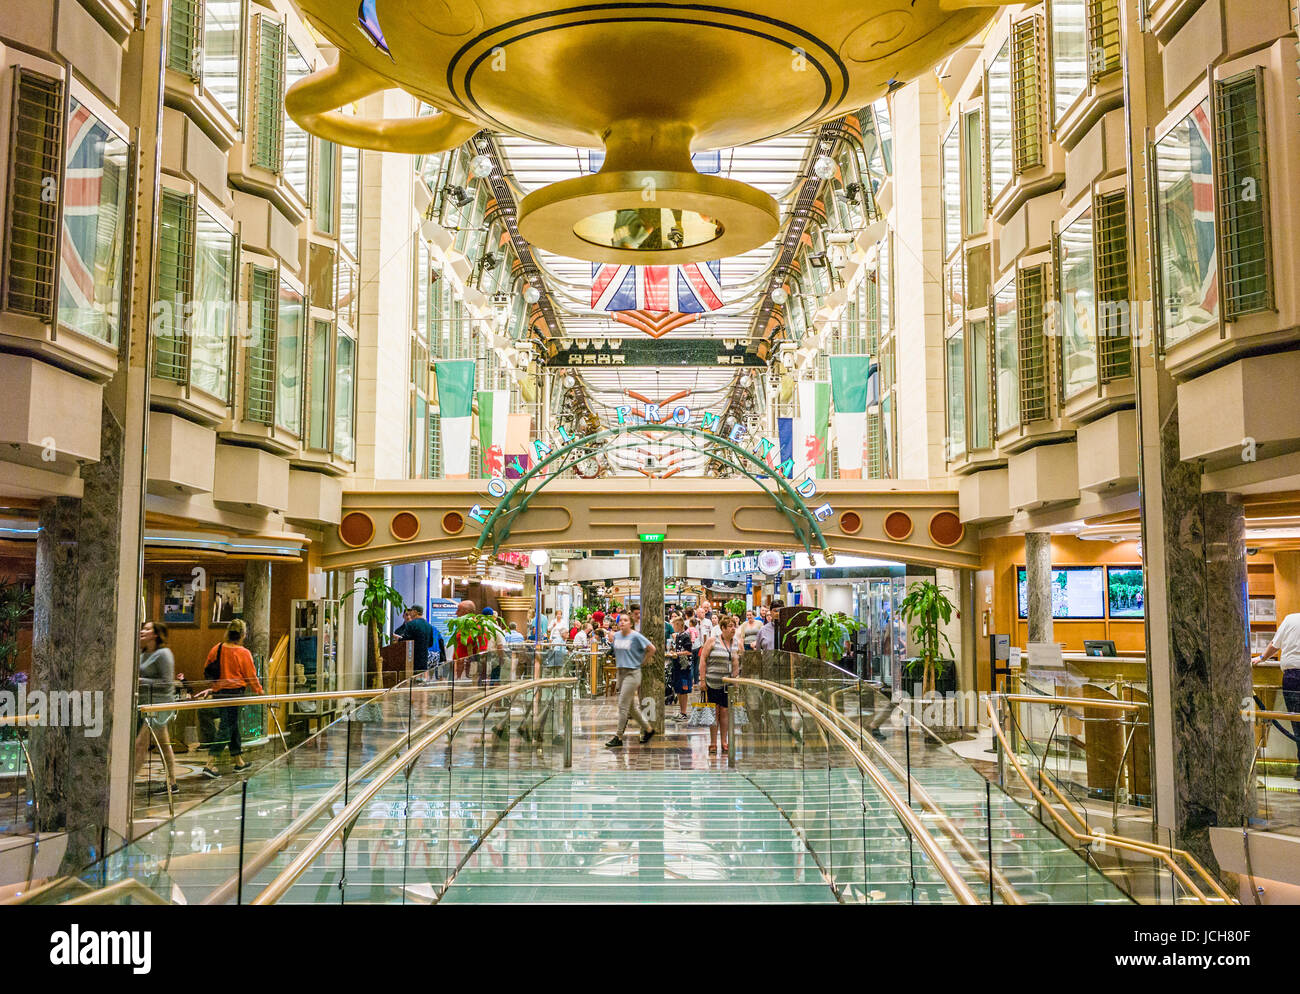 ROYAL PROMENADE ABOARD CRUISE SHIP INDEPENDANCE OF THE SEAS  FRANCE MAY 30TH: Guest aboard the Cruise ship Indendance Stock Photo